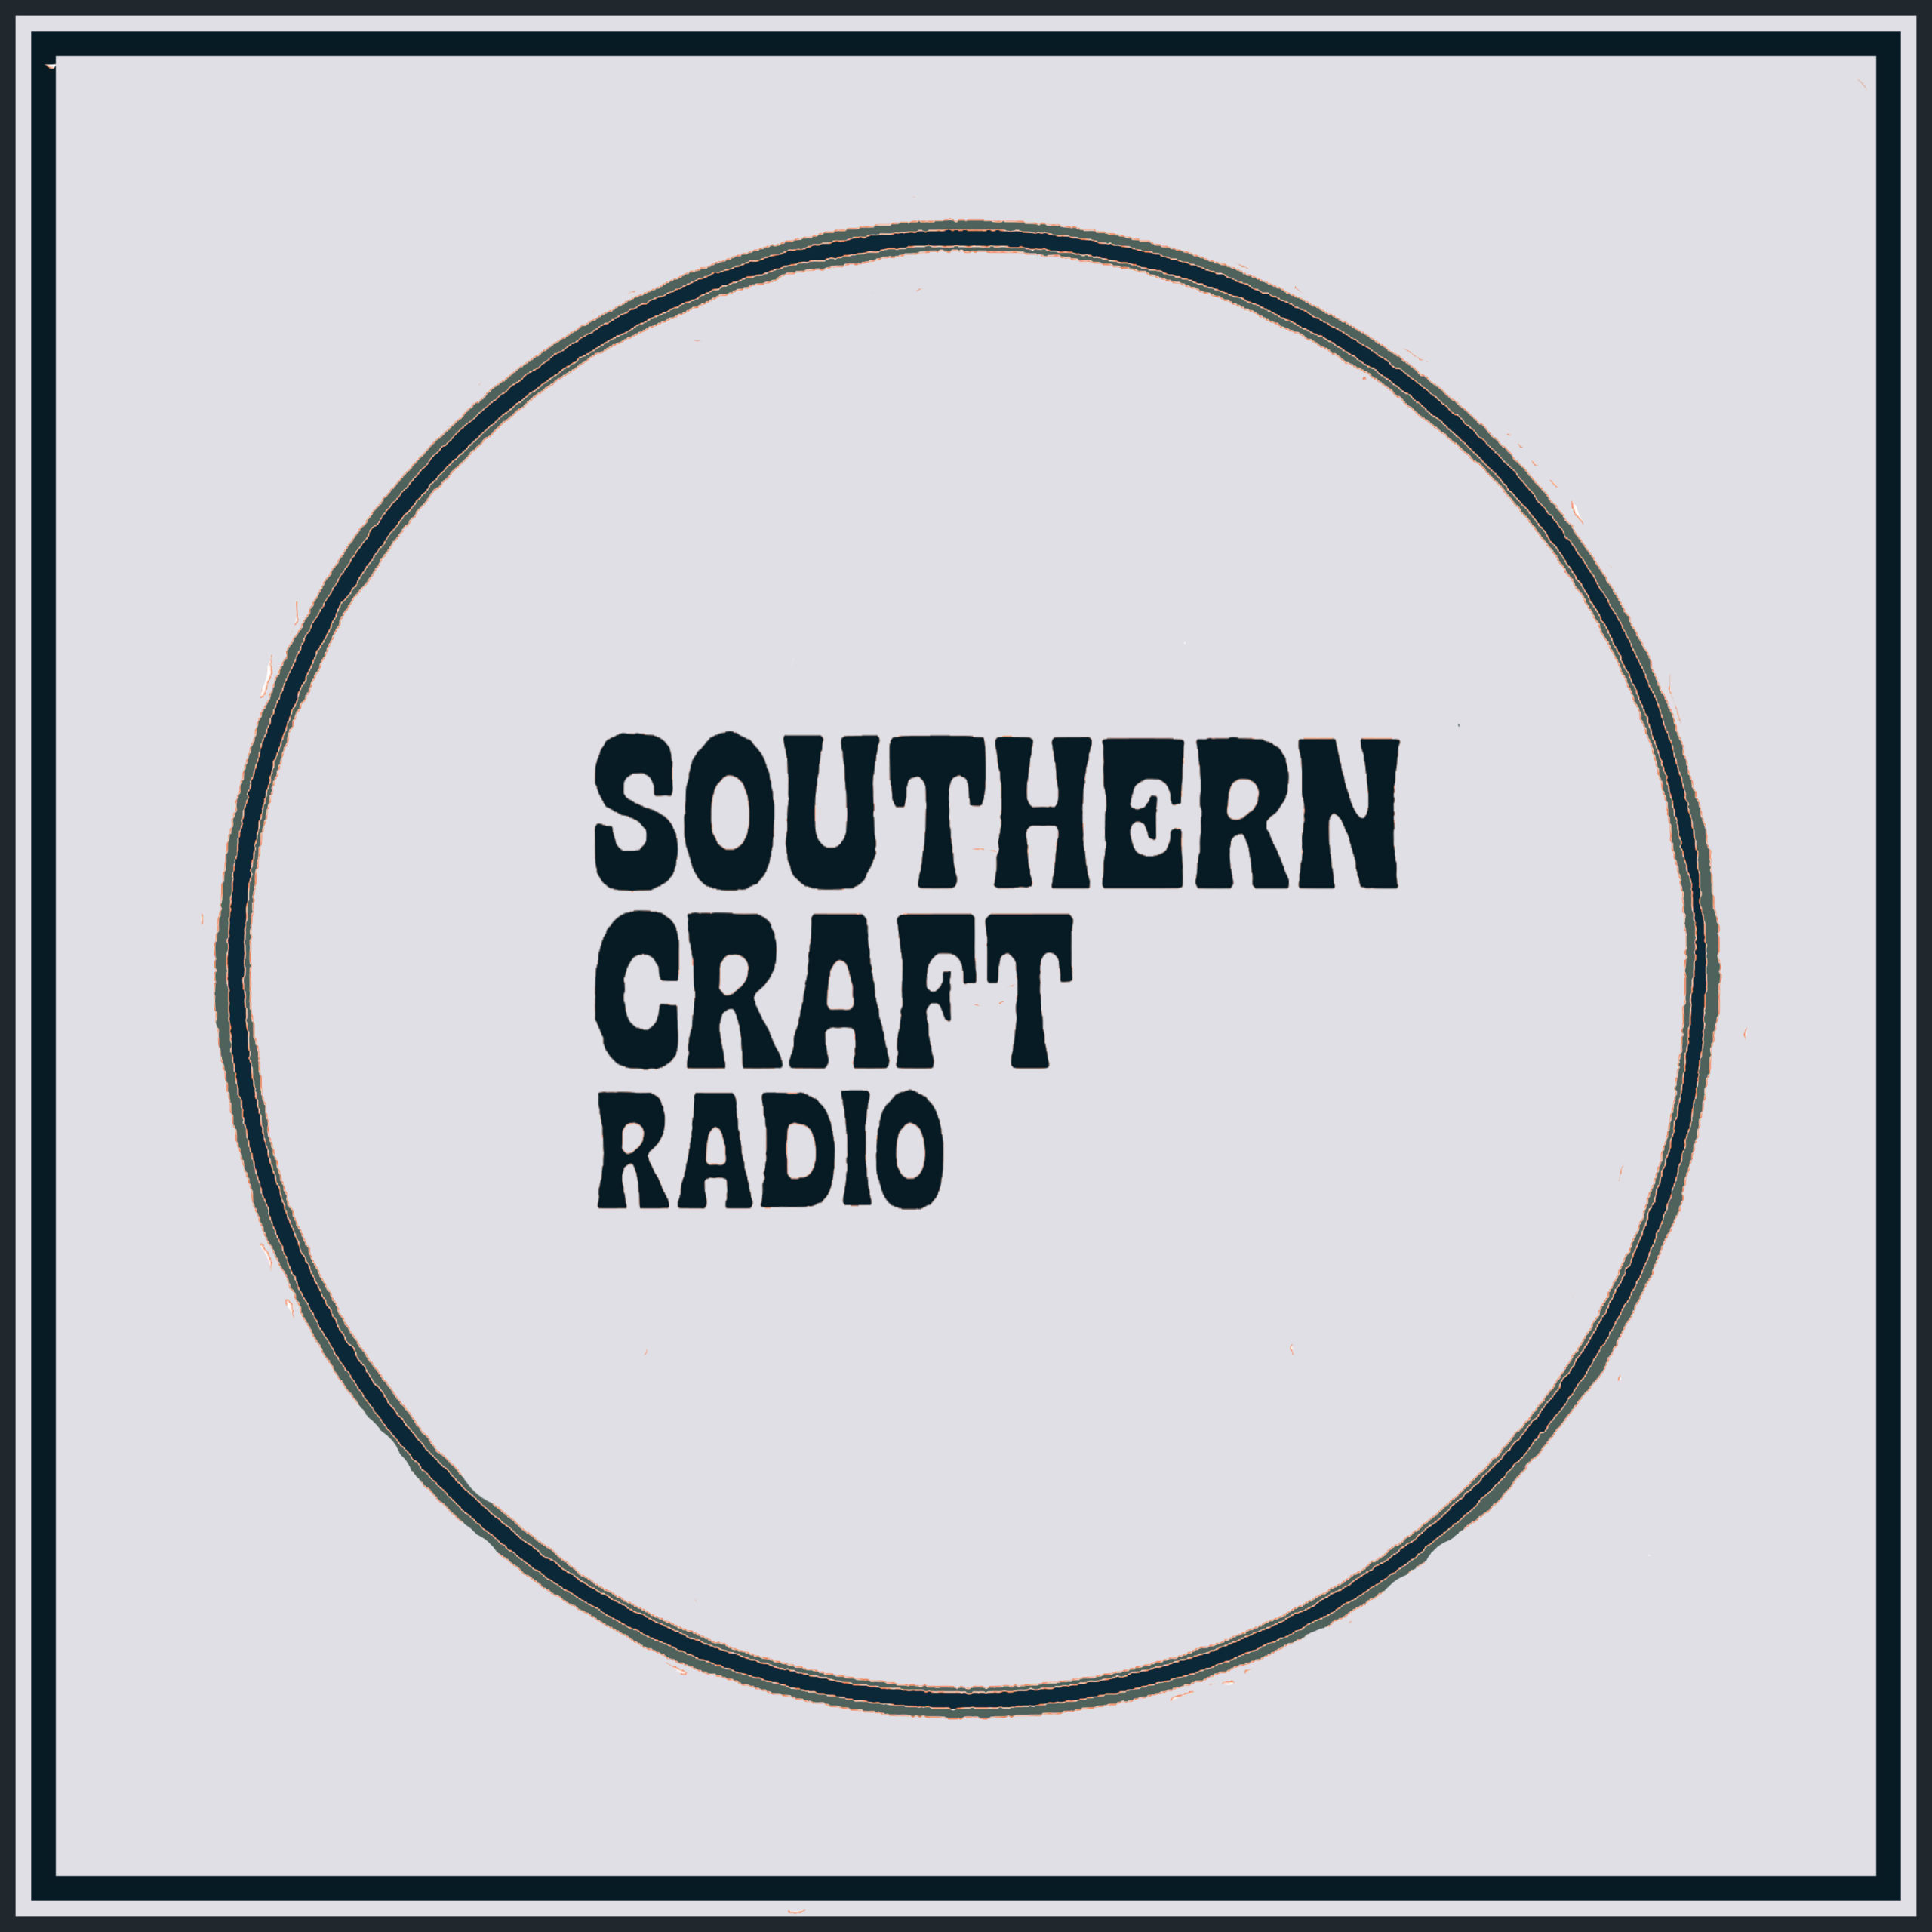 Southern Craft Radio